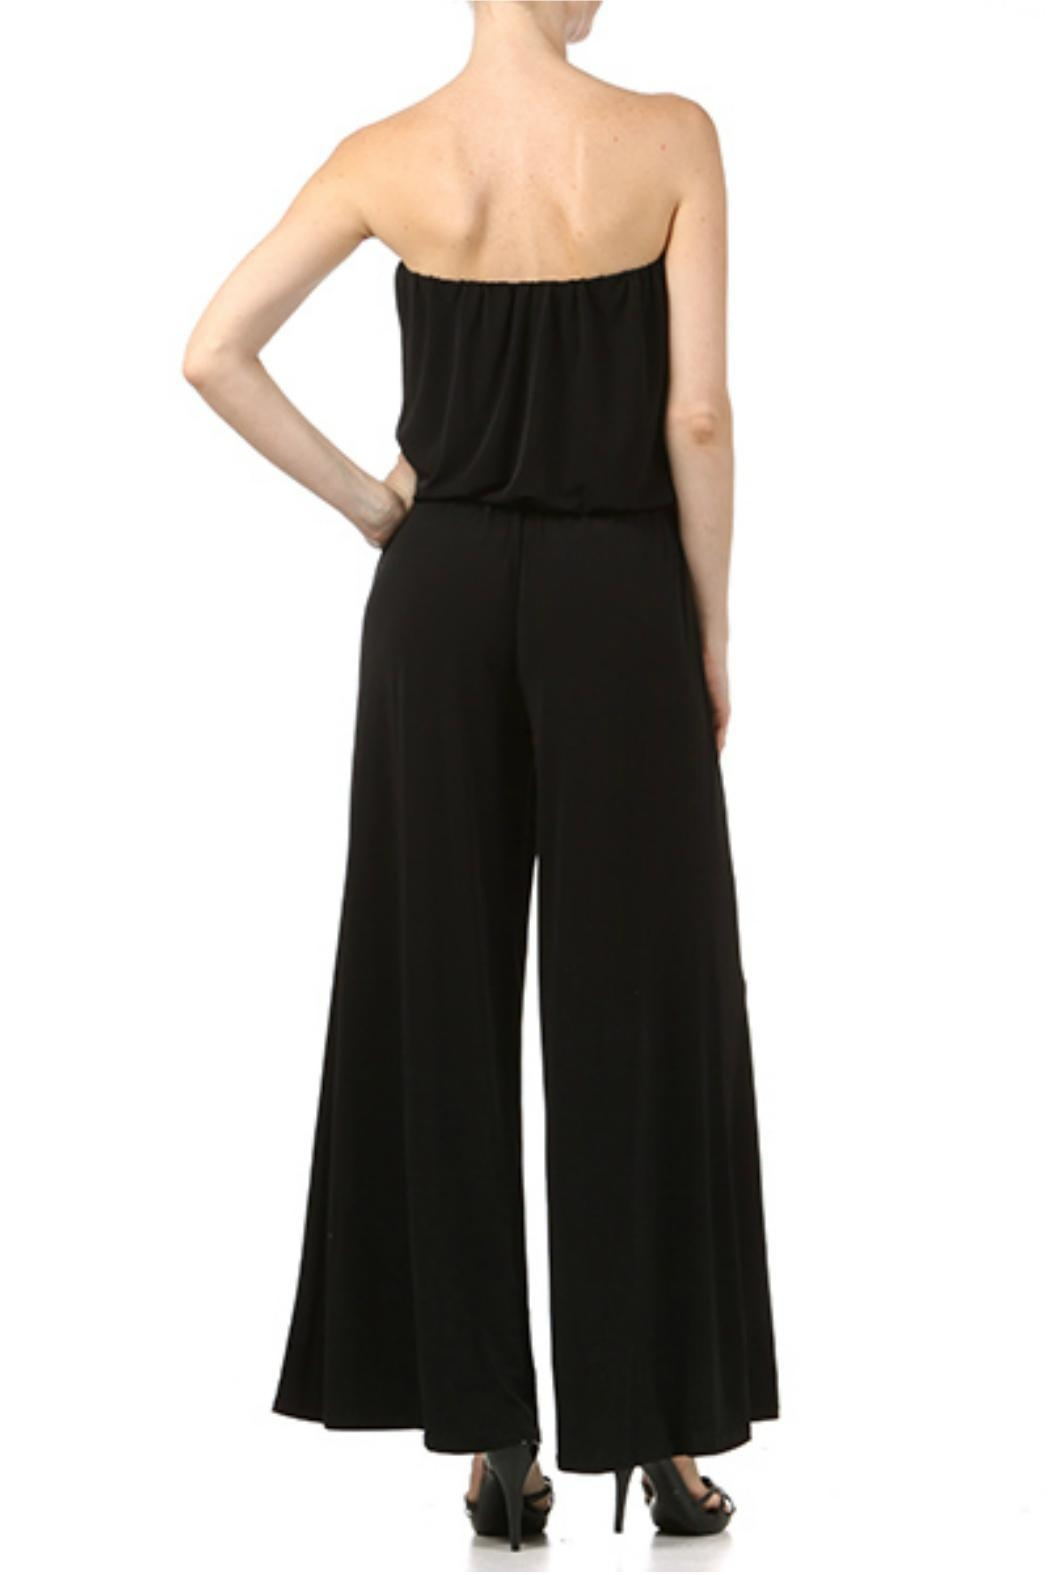 Ariella USA Strapless Jumpsuit w Rope Belt - Front Full Image